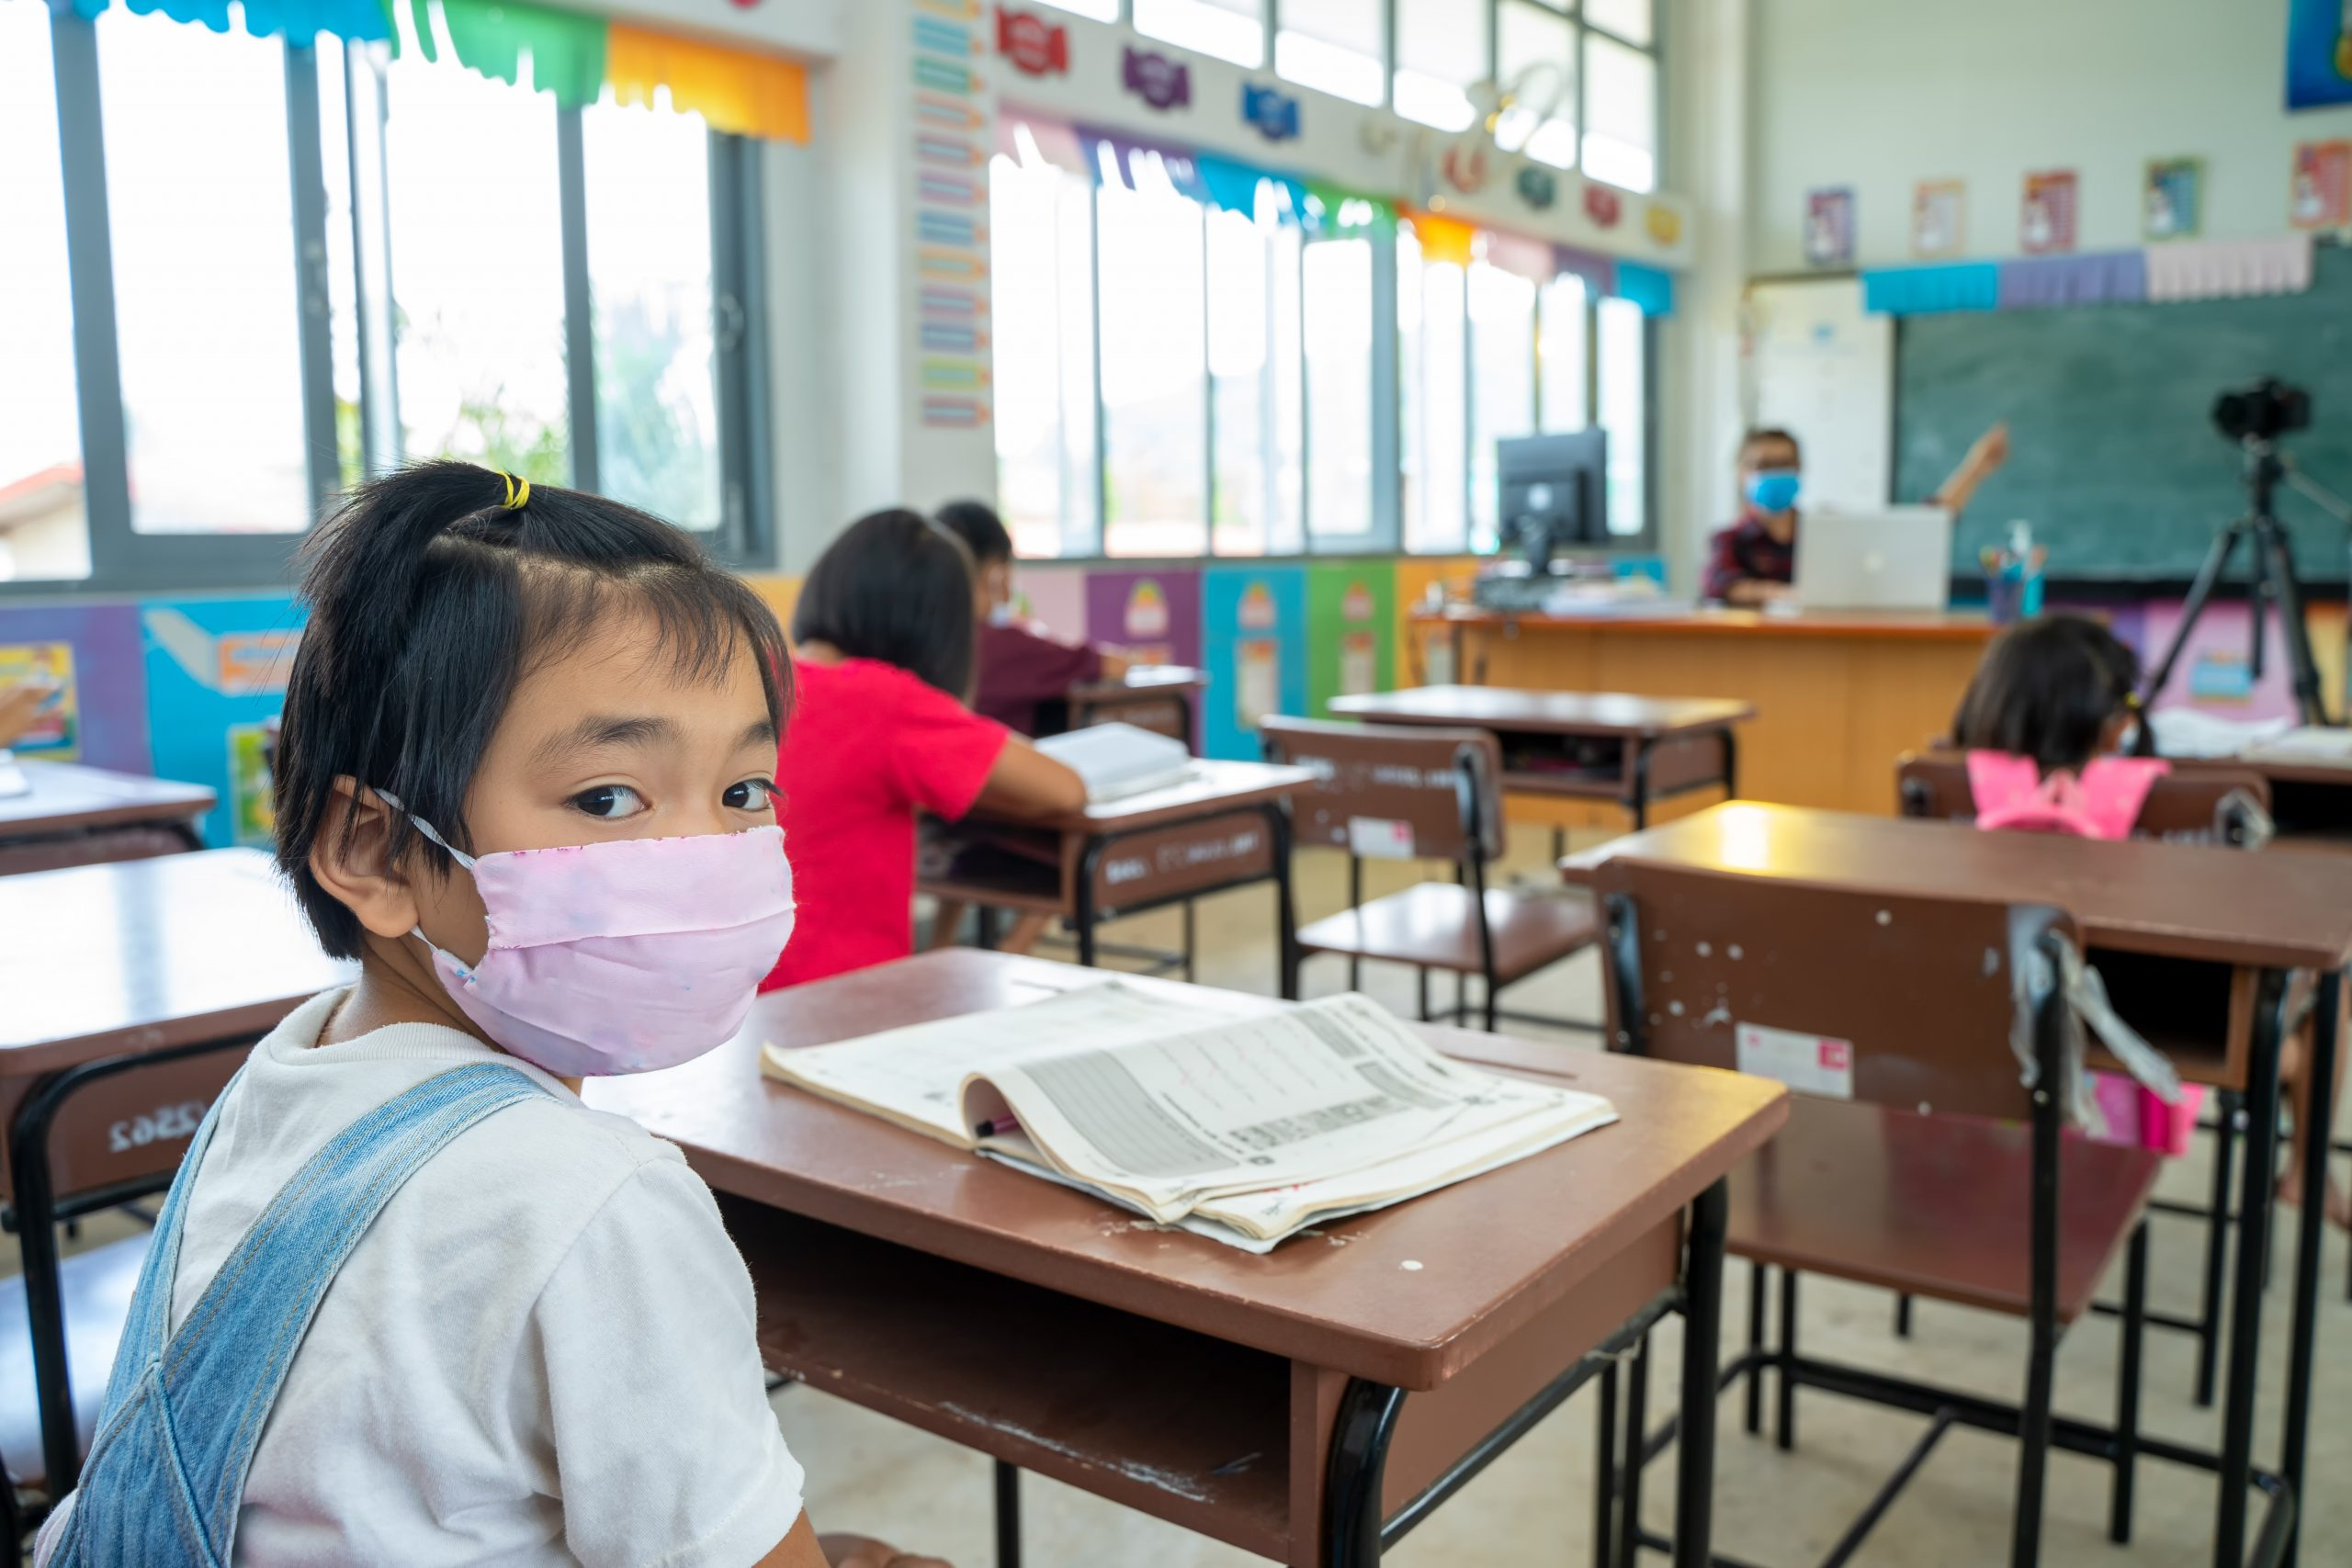 COVID-19 and children: how schools play a role in the transmission of the virus